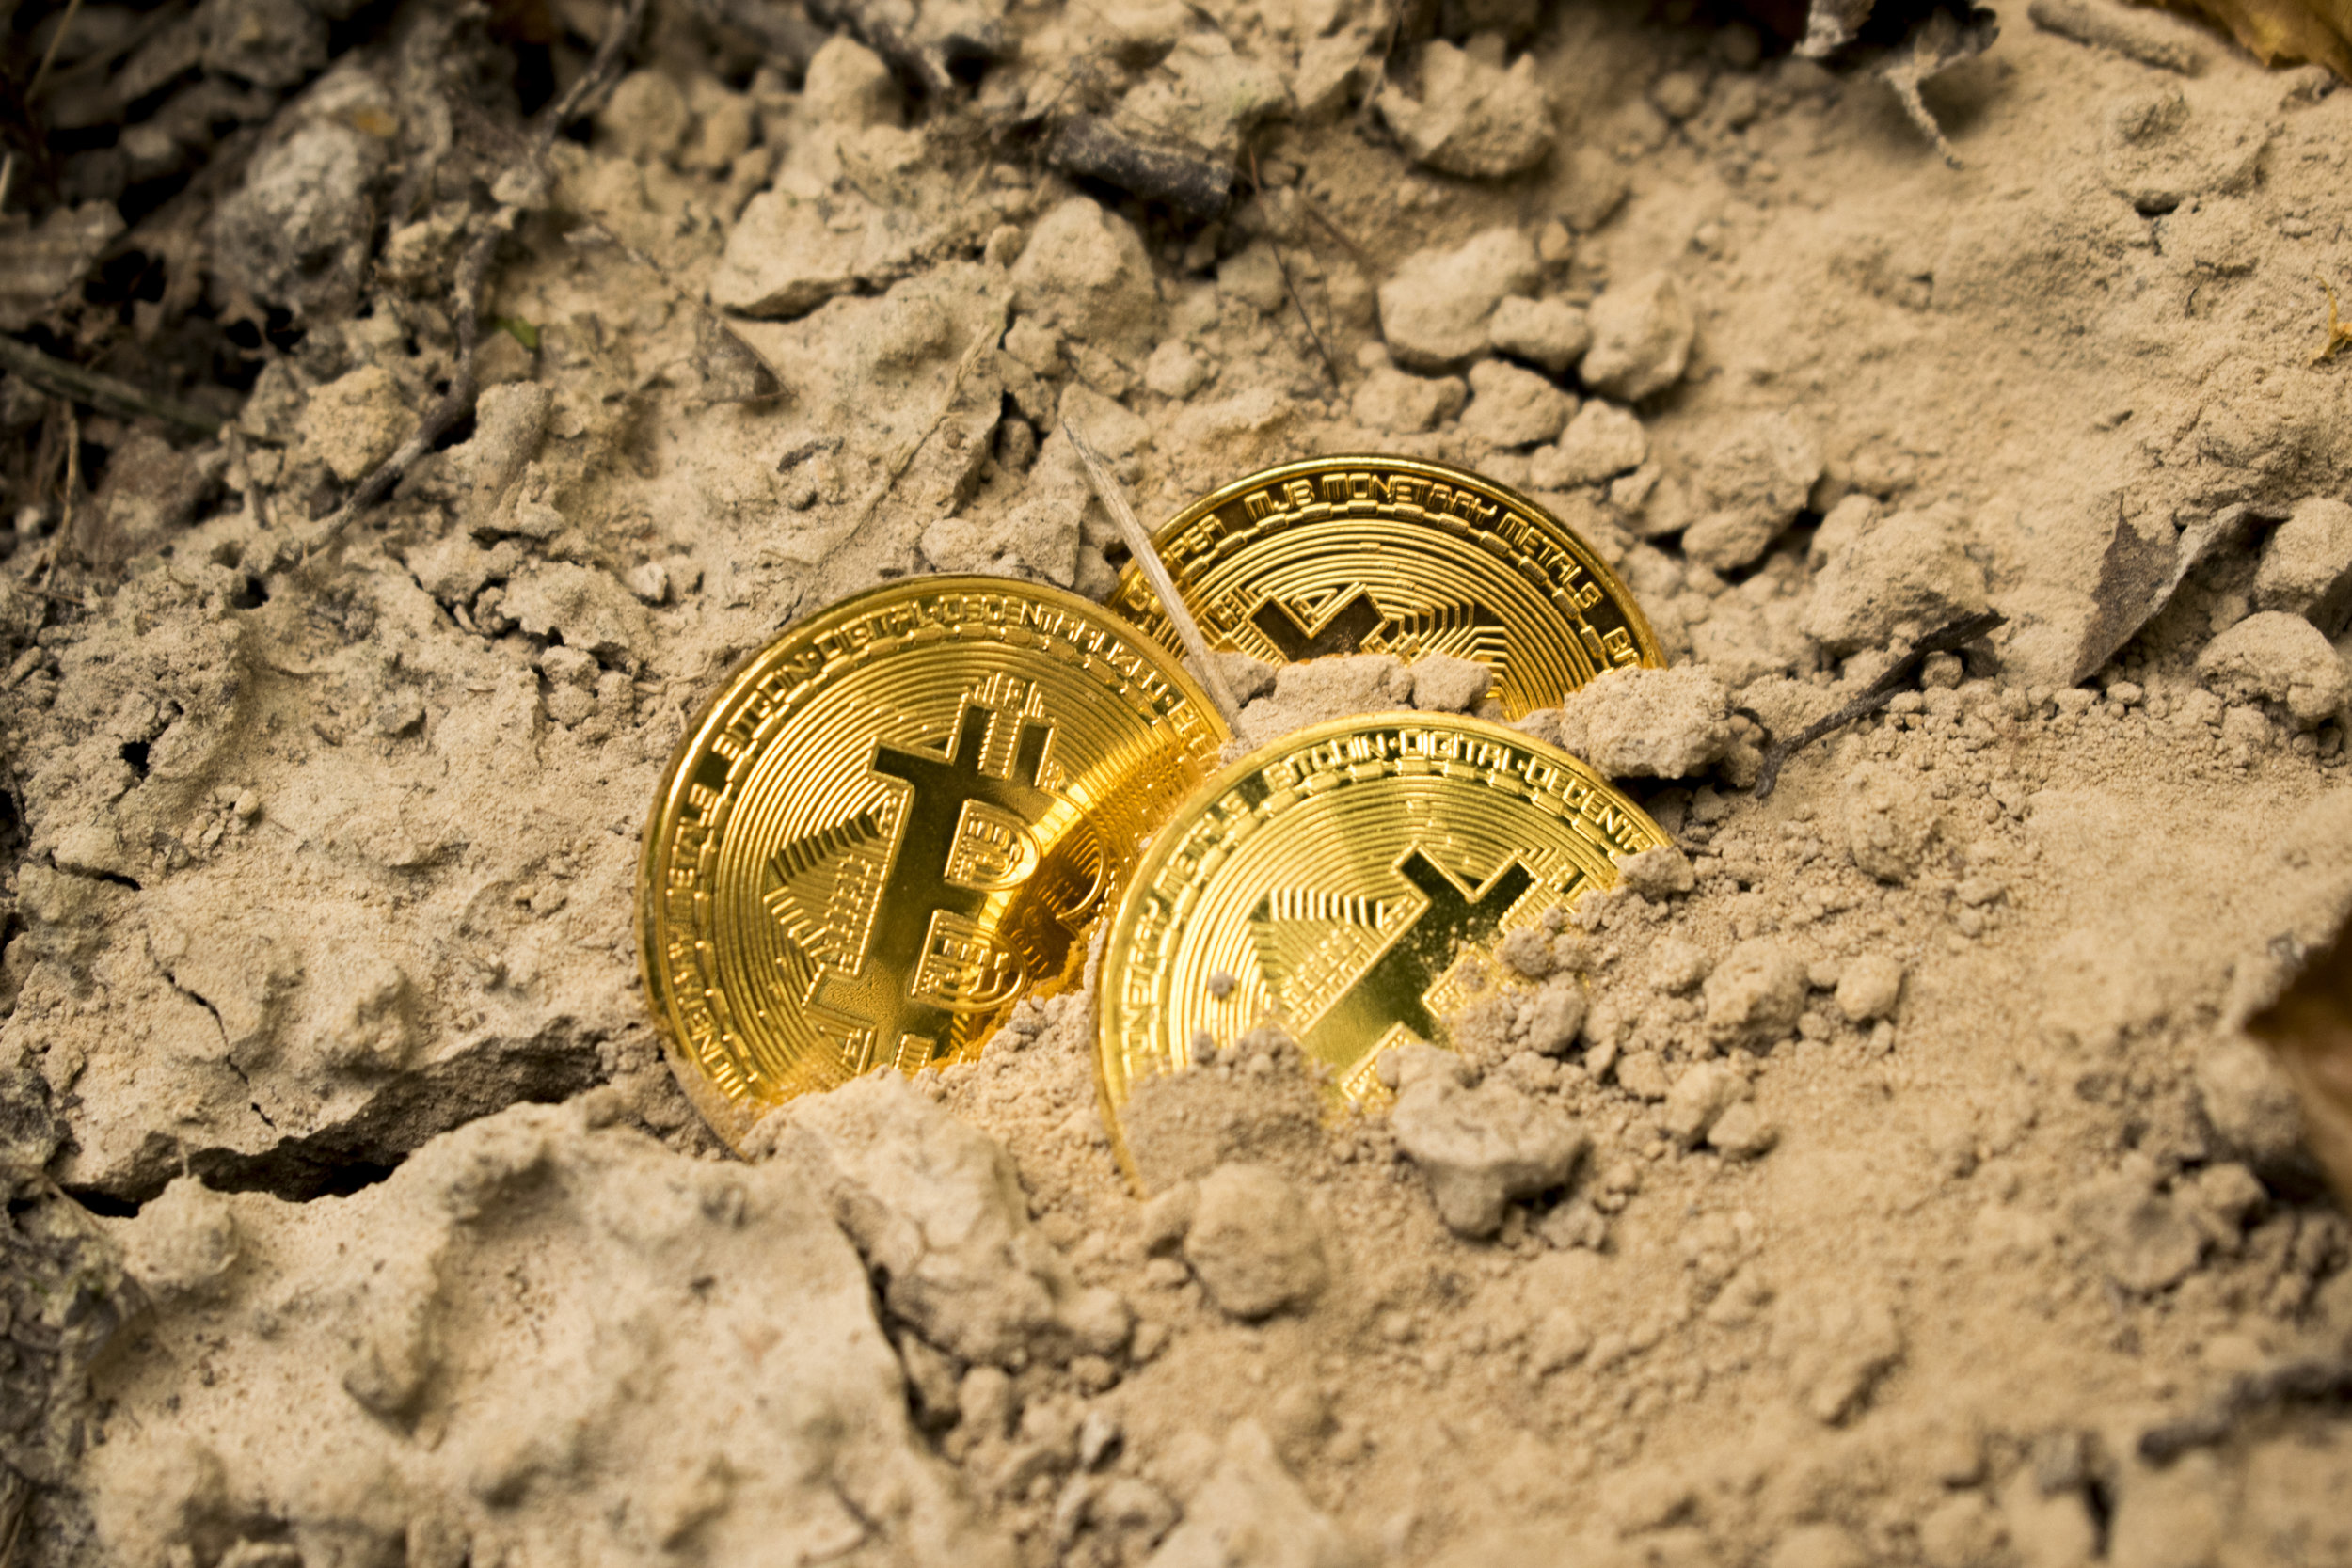 What is cryptocurrency? - So what exactly is cryptocurrency? How does it differ from other types of currency? And what are the most popular cryptocurrencies?